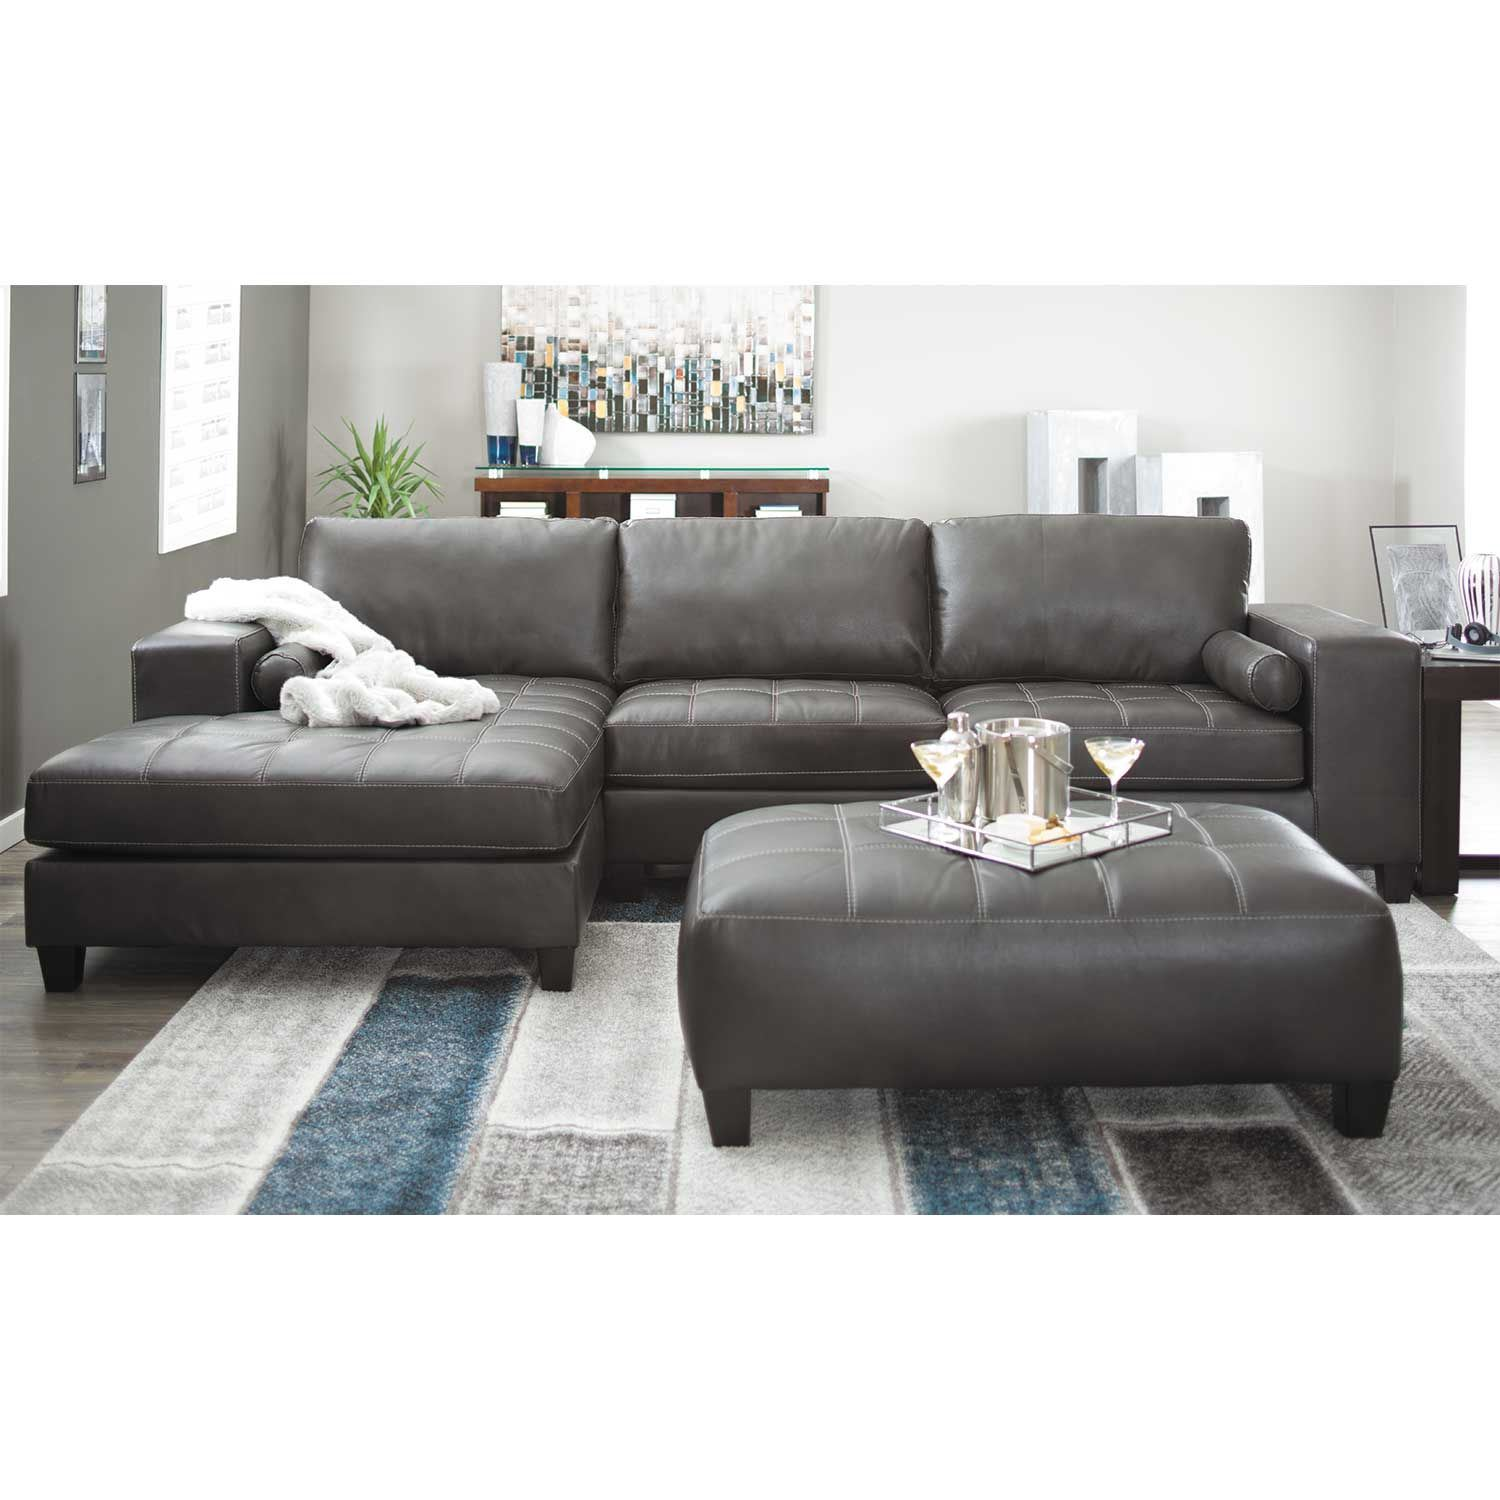 Picture of Nokomis 2 Piece Sectional with RAF Chaise